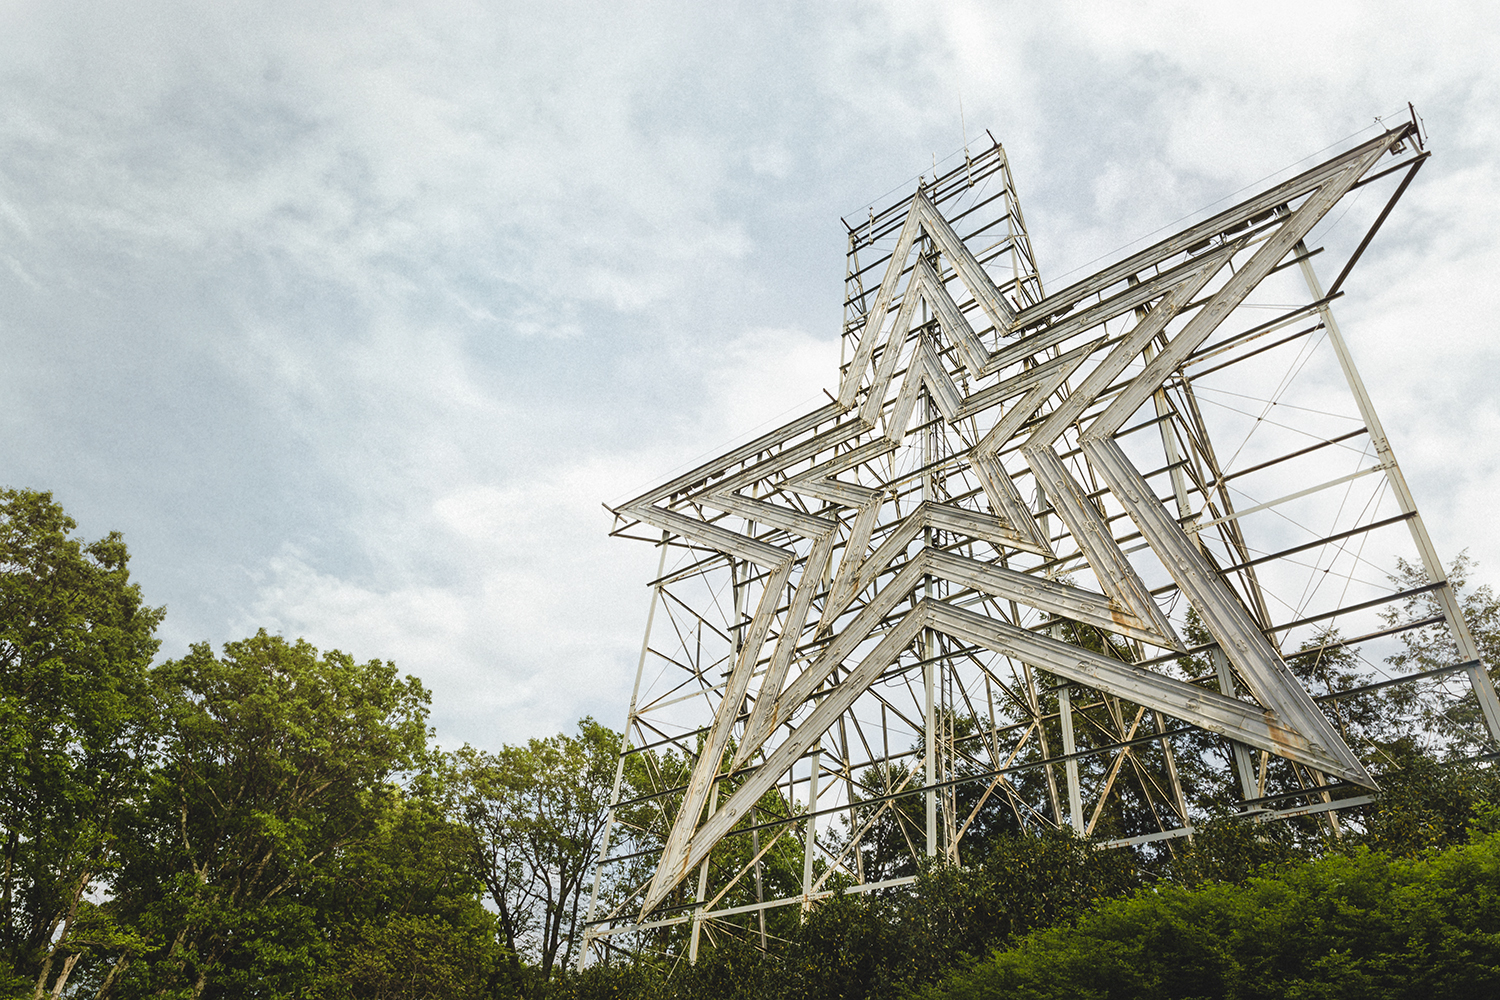 Roanoke Star - World's largest man-made star. Erected in 1949 atop Mill Mountain.